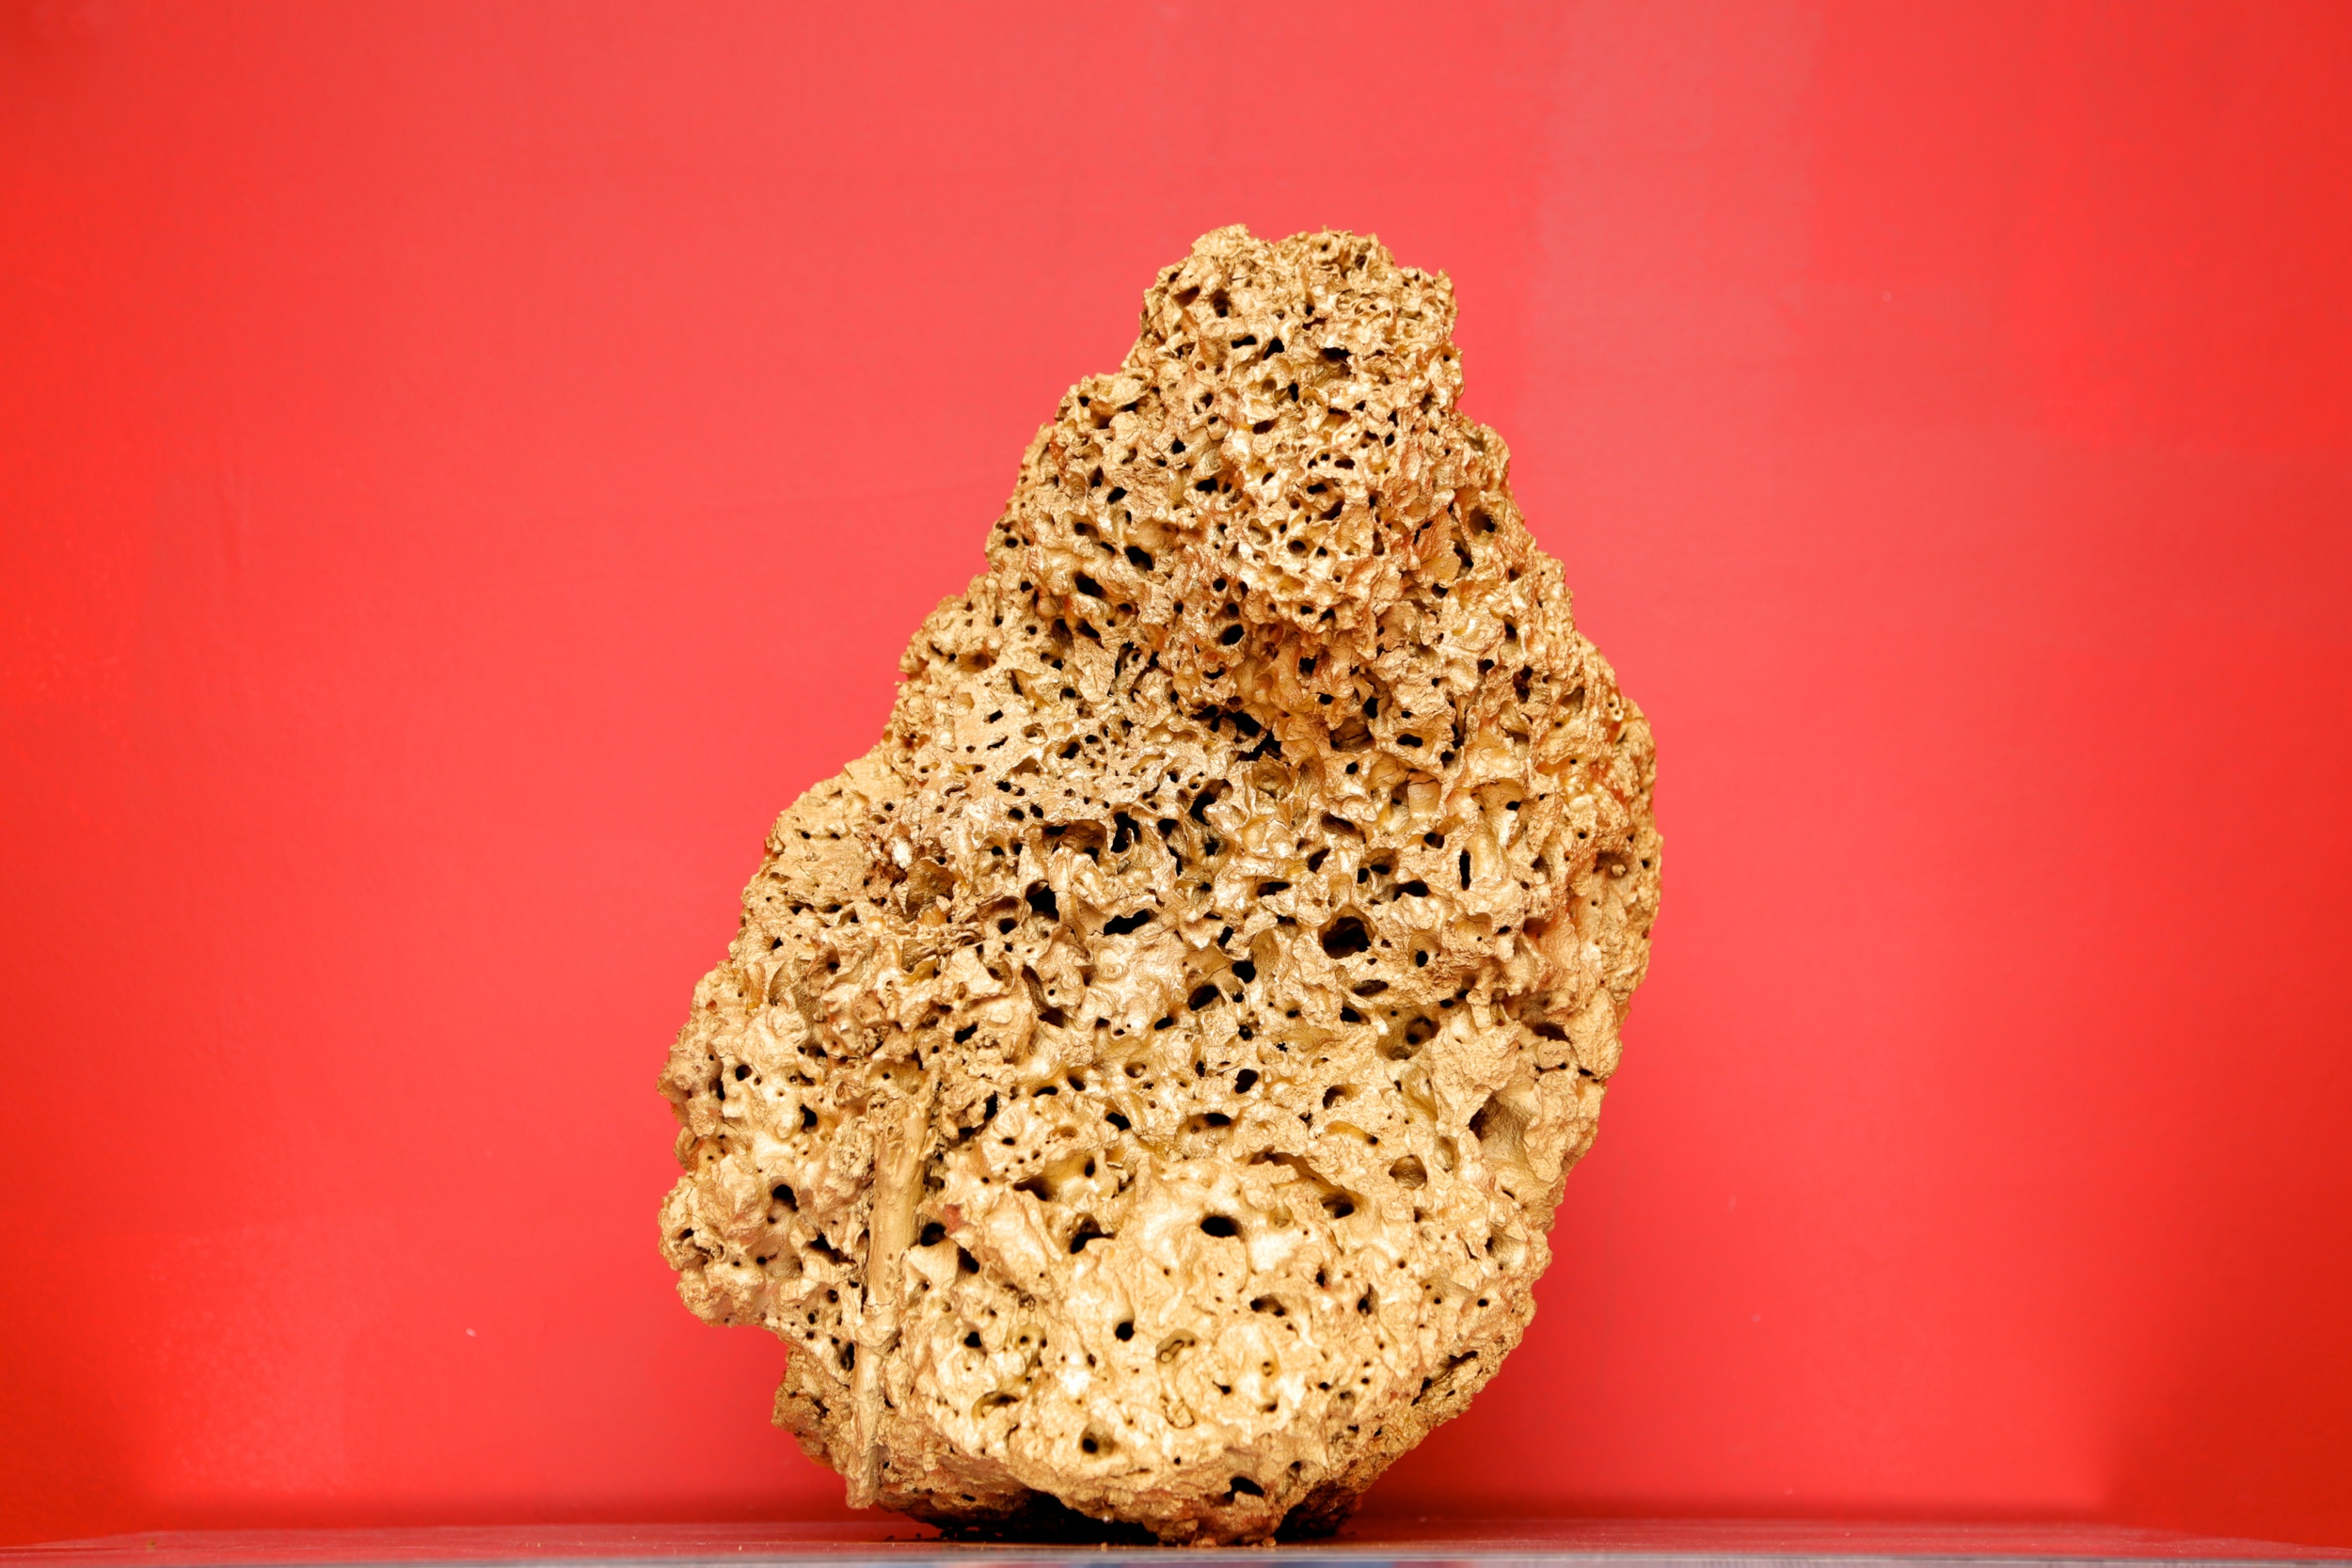 Truong Cong Tung   'Journey of a piece of soil', 2014   Termite nest, paint   38 x 40 x 60 cm